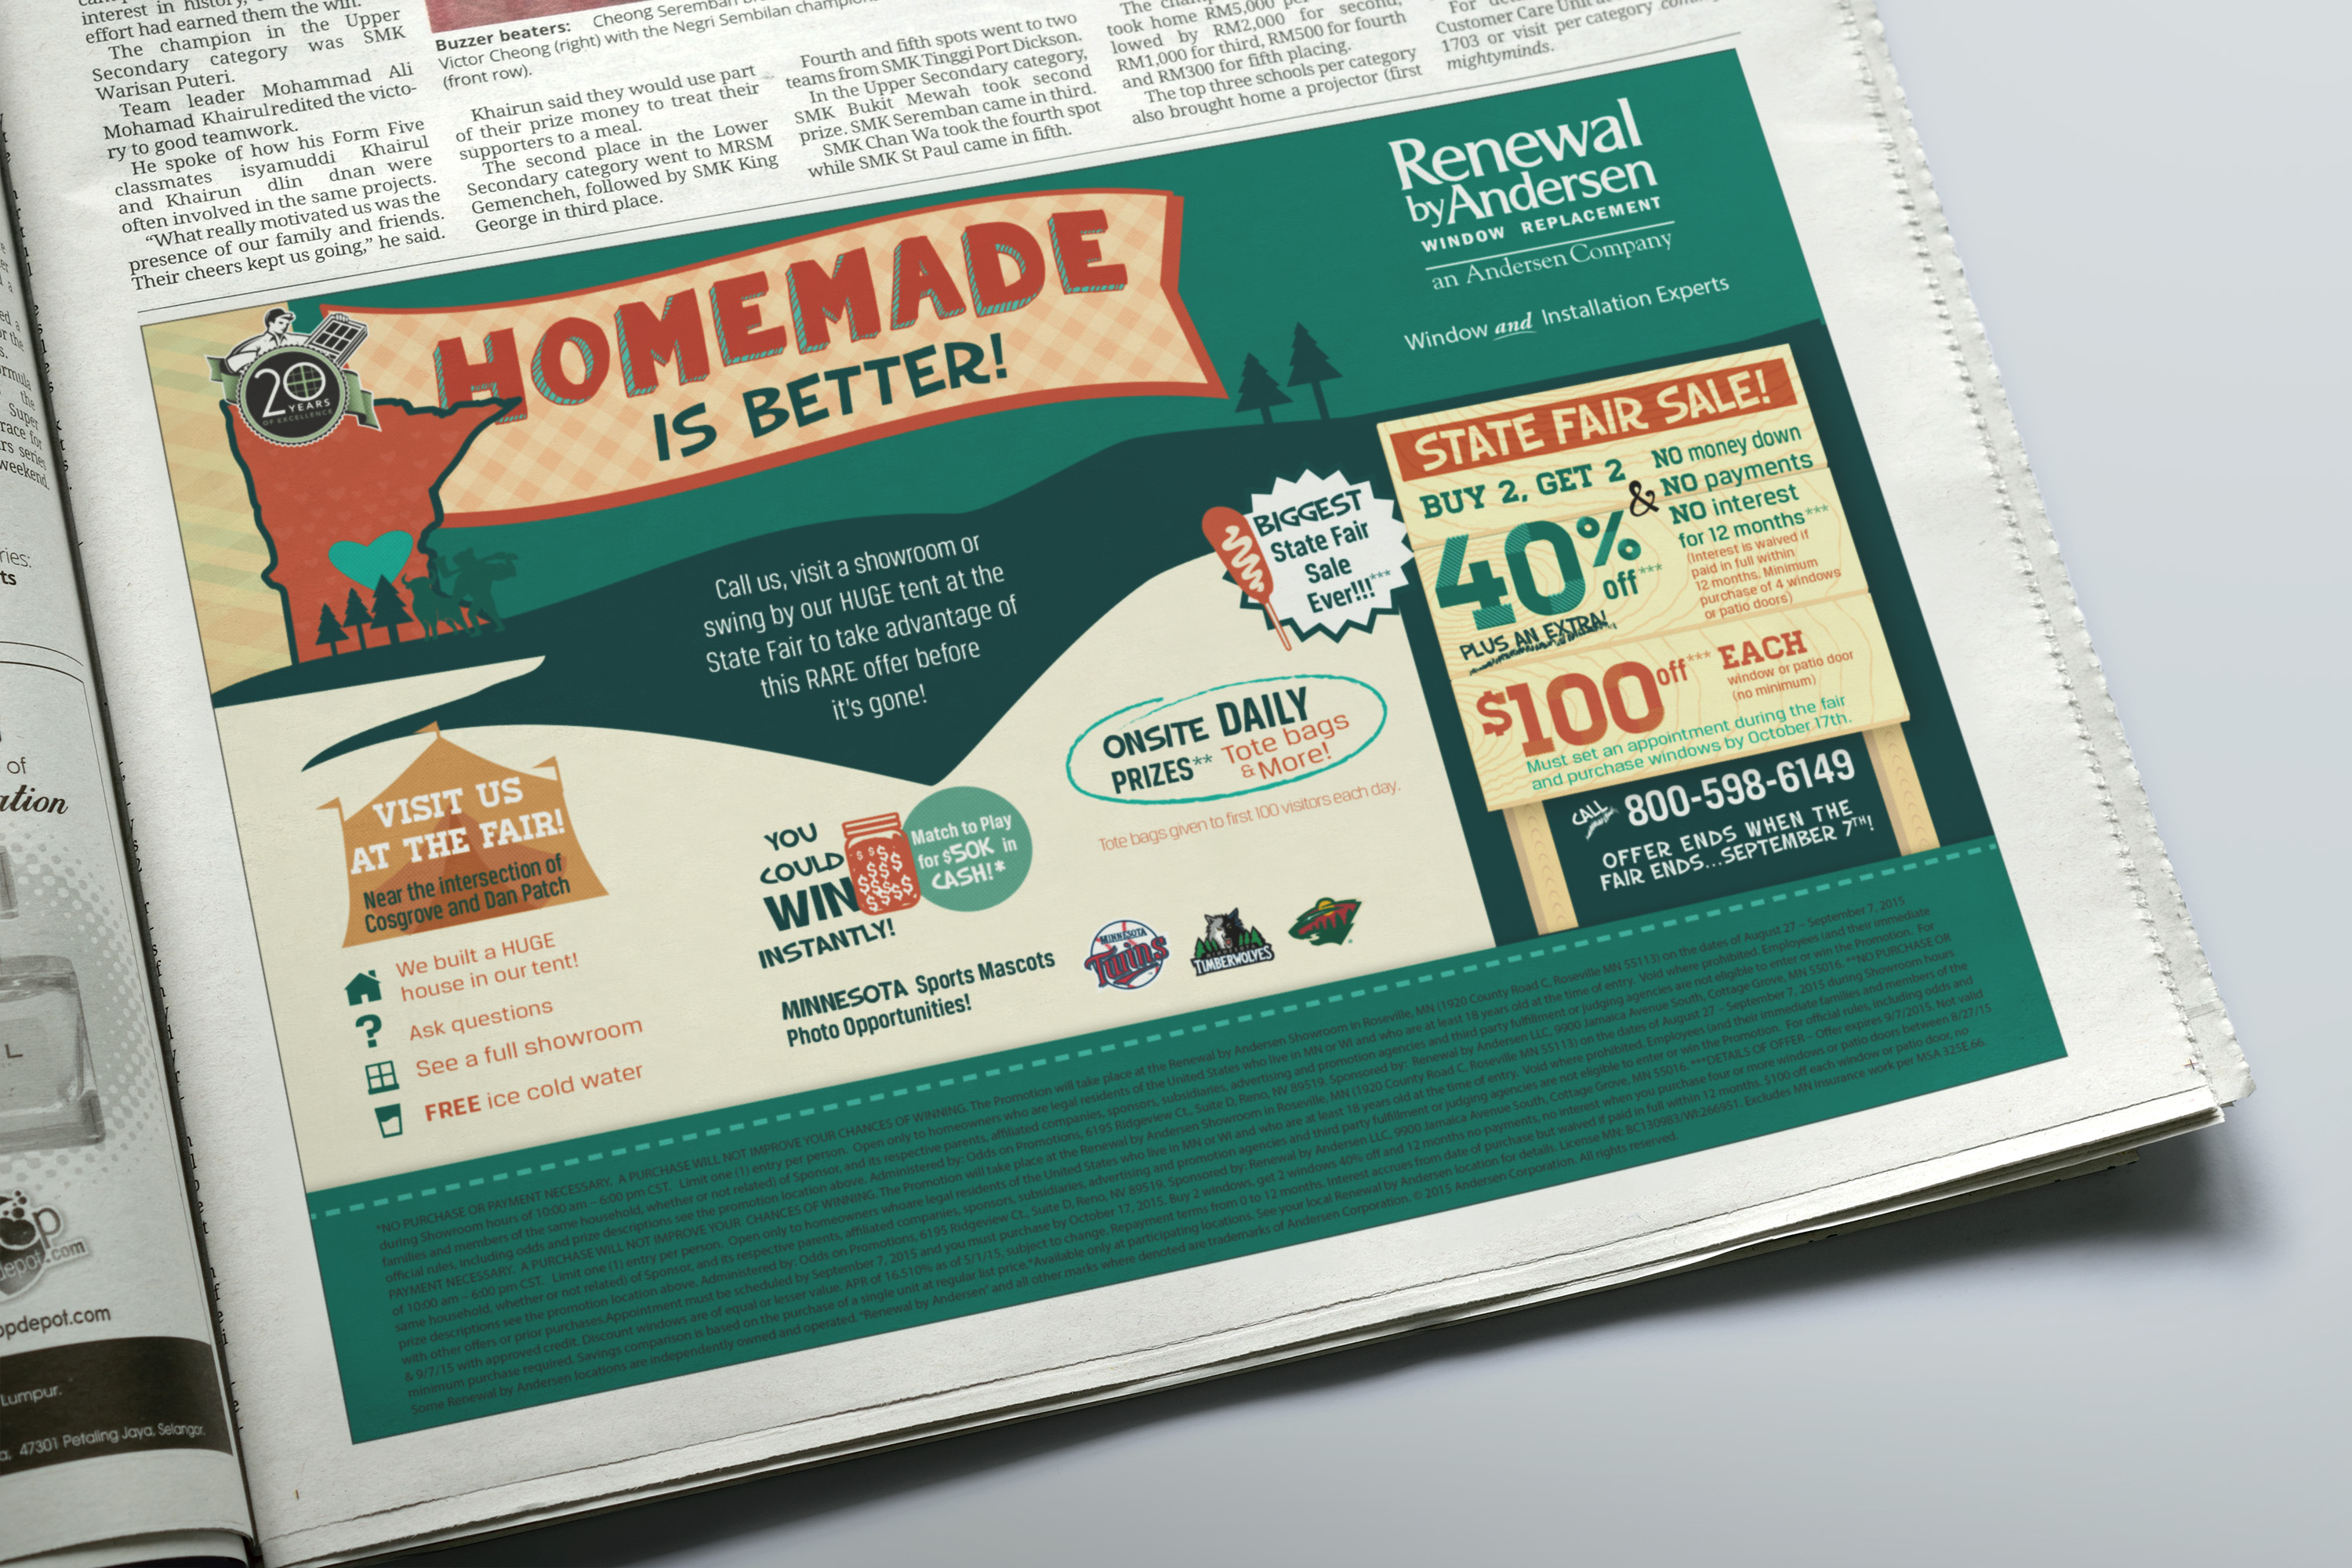 RbA Newspaper Ad